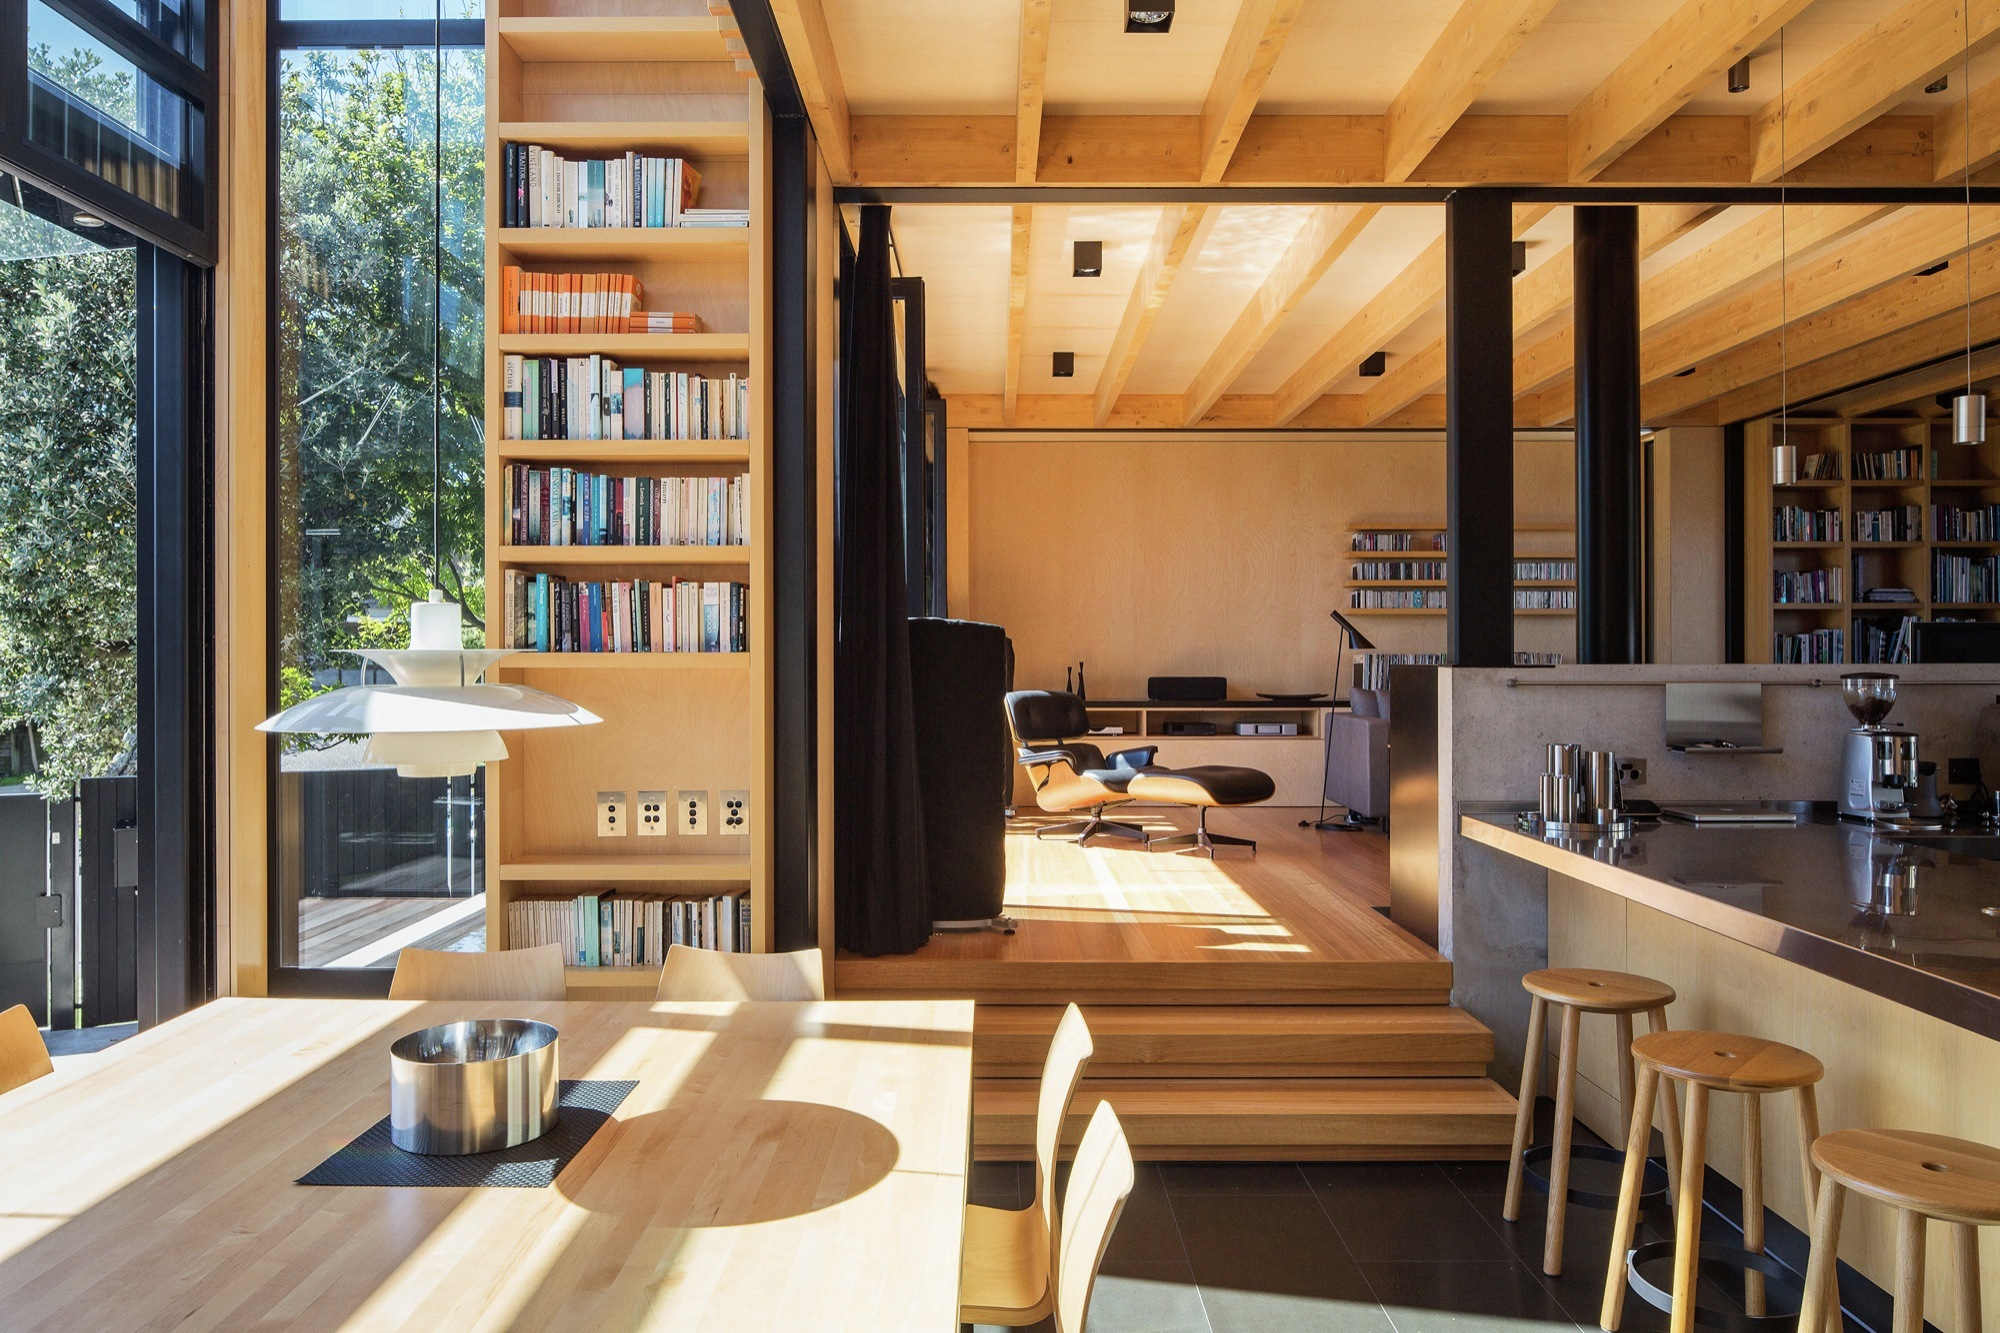 Sunken dining space and a timber living space of a boatshed in Auckland, New Zealand [OS] [2000×1333]